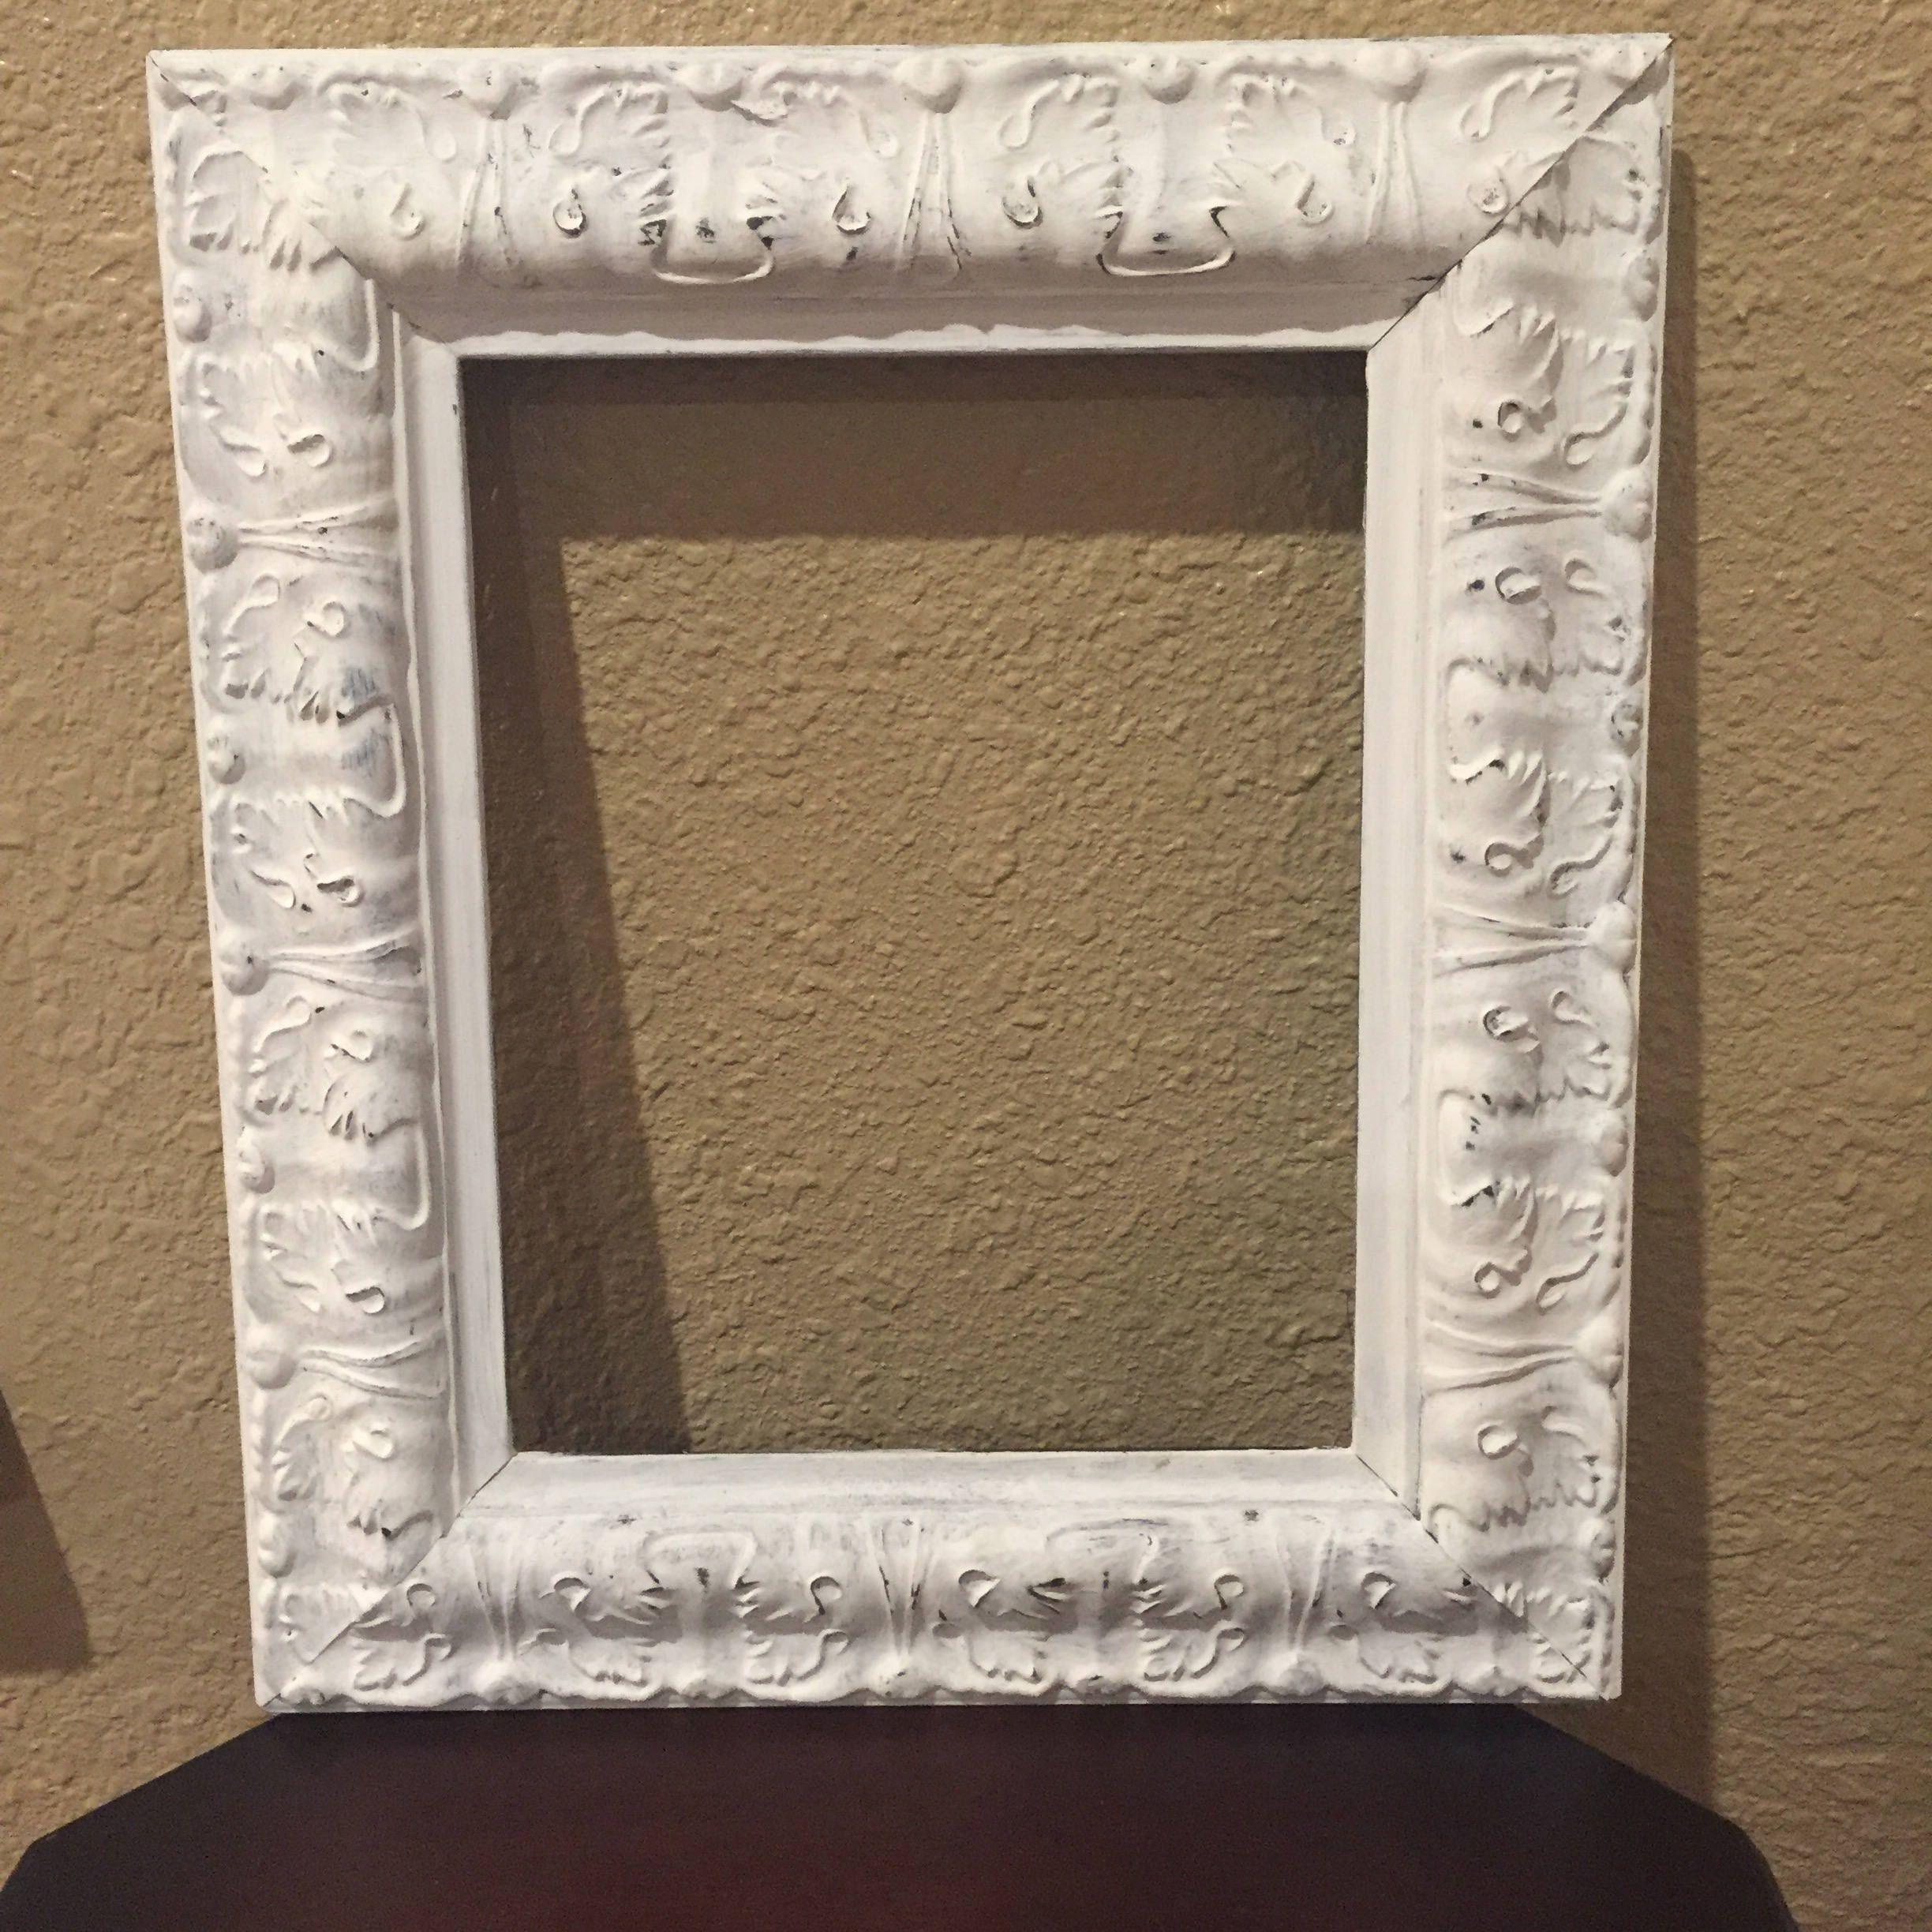 Medium Of 8 X 10 Frames